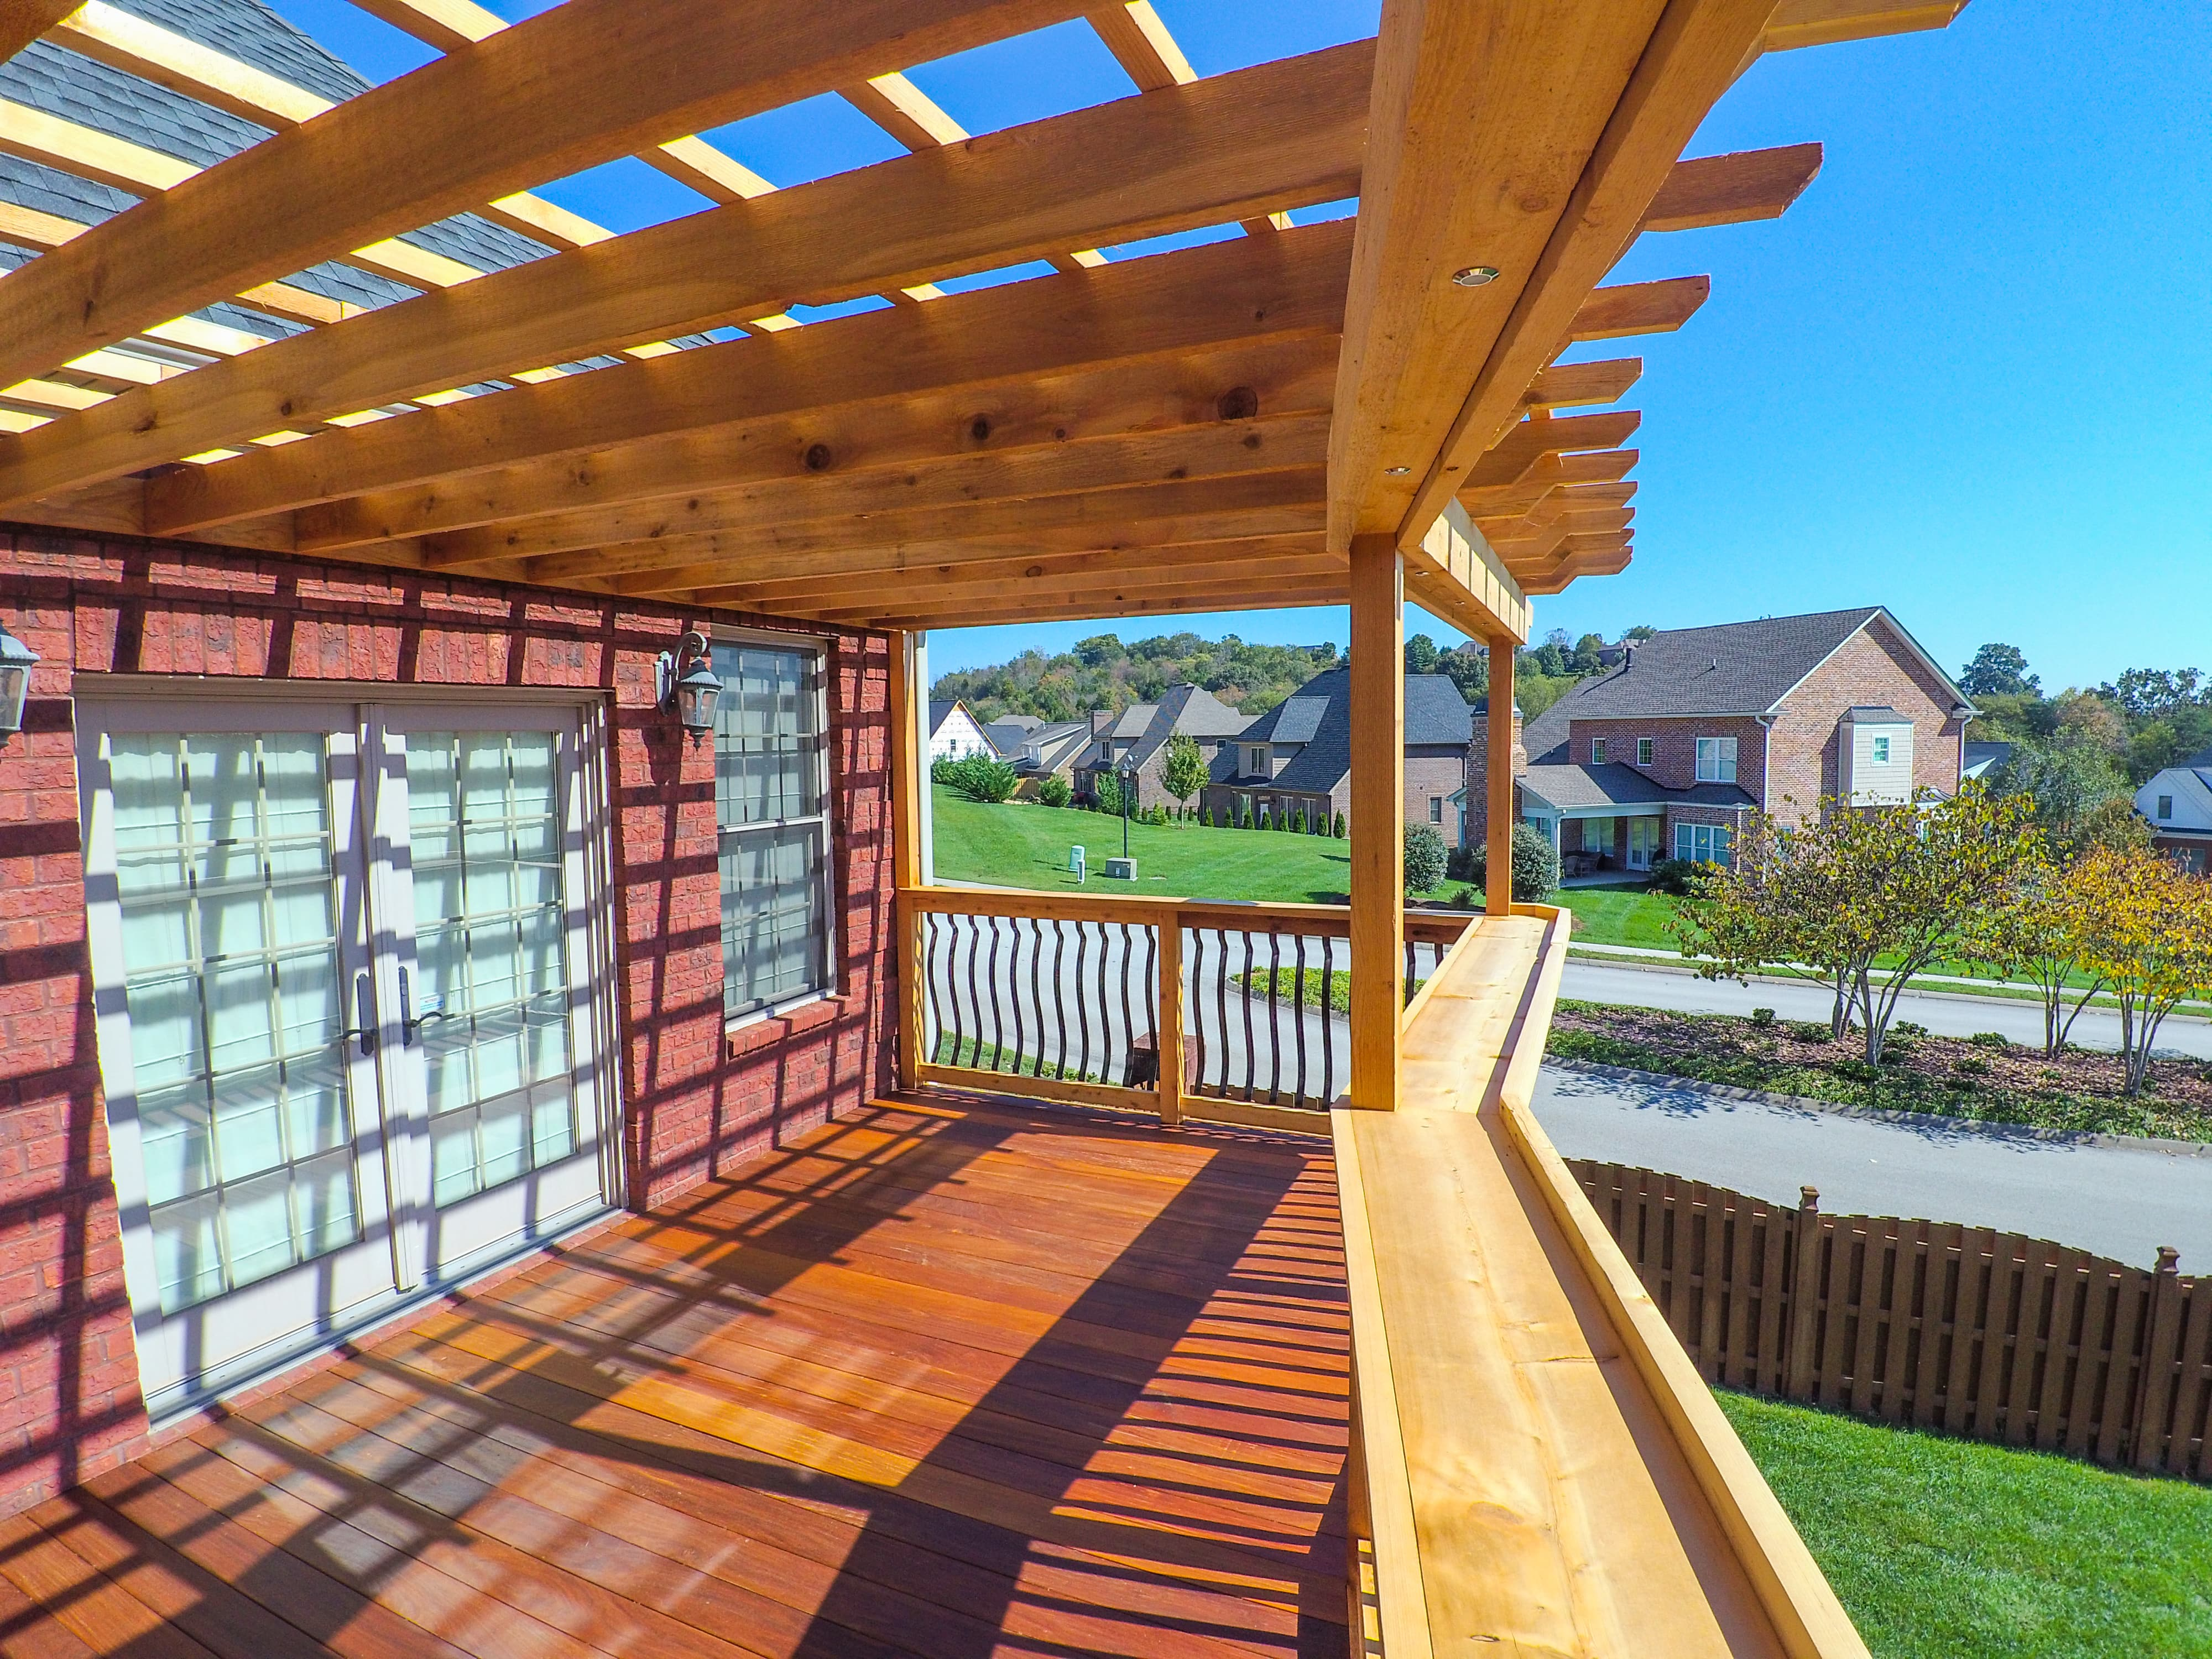 Smoky Mountain Deck Builders Llc Knoxville Tennessee Tn